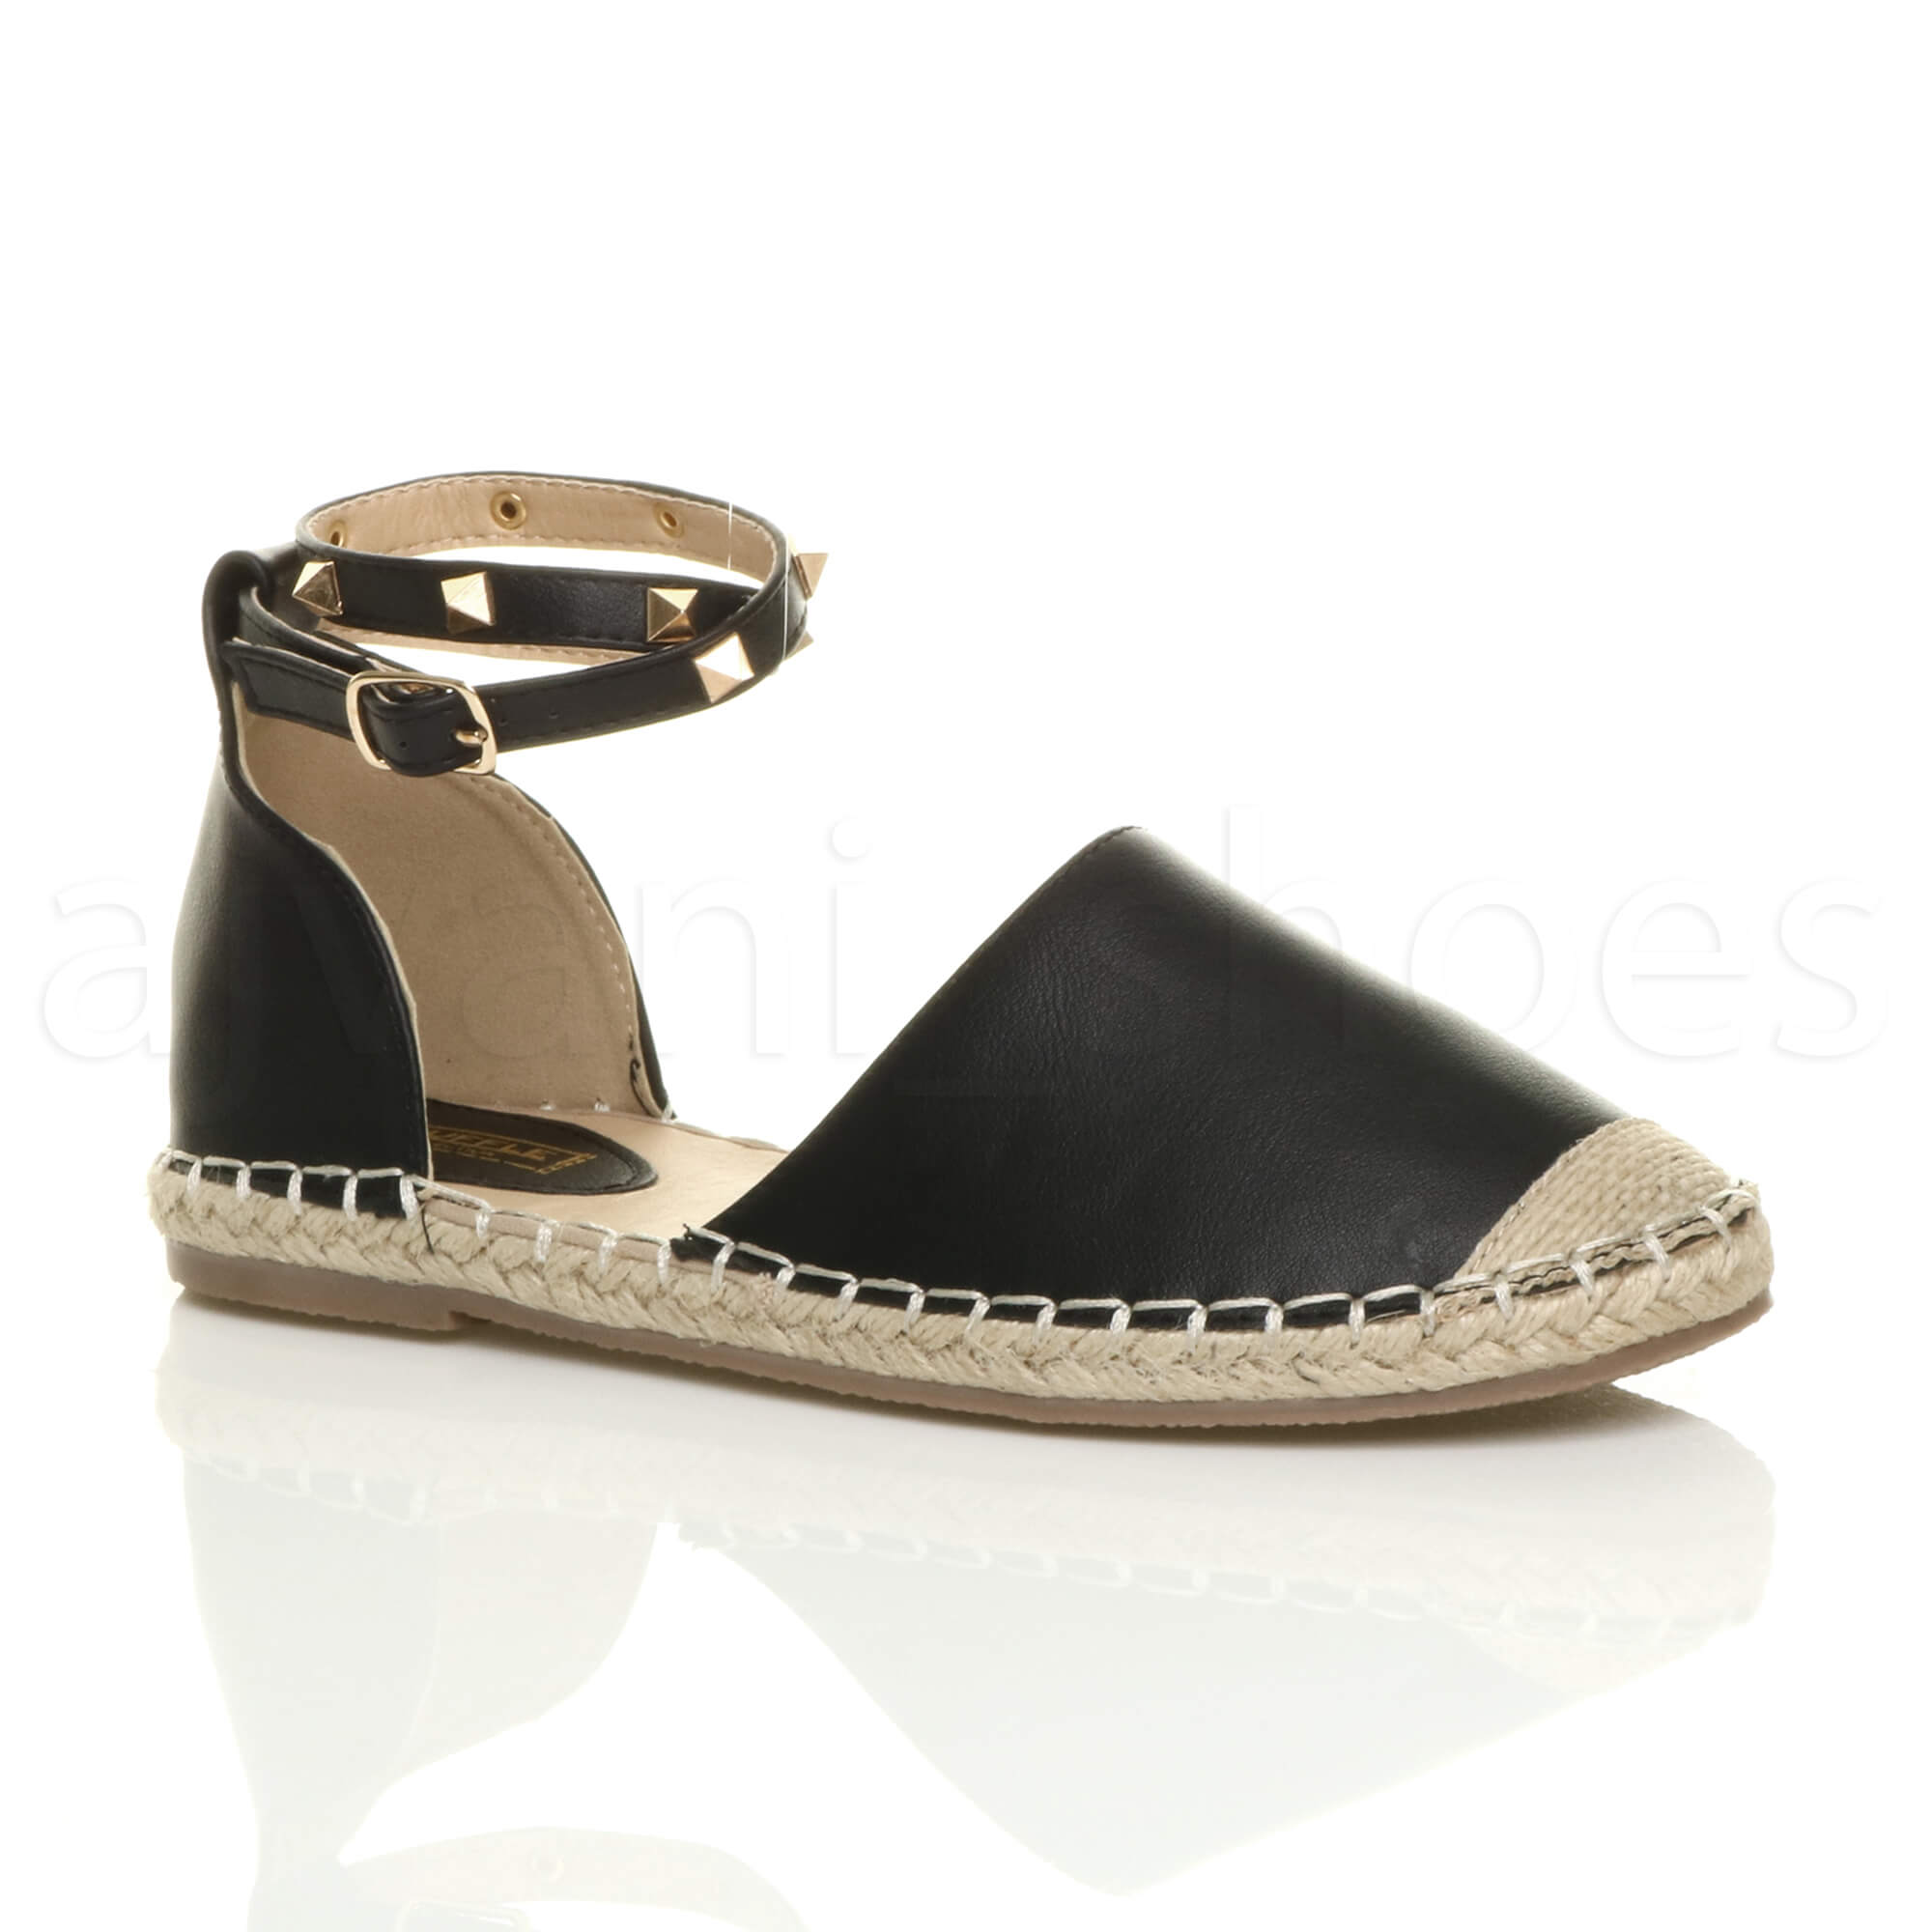 Mujer Flat Studded Sandals Ankle Strap Espadrilles Ladies Sandals Studded Summer zapatos 0f8818